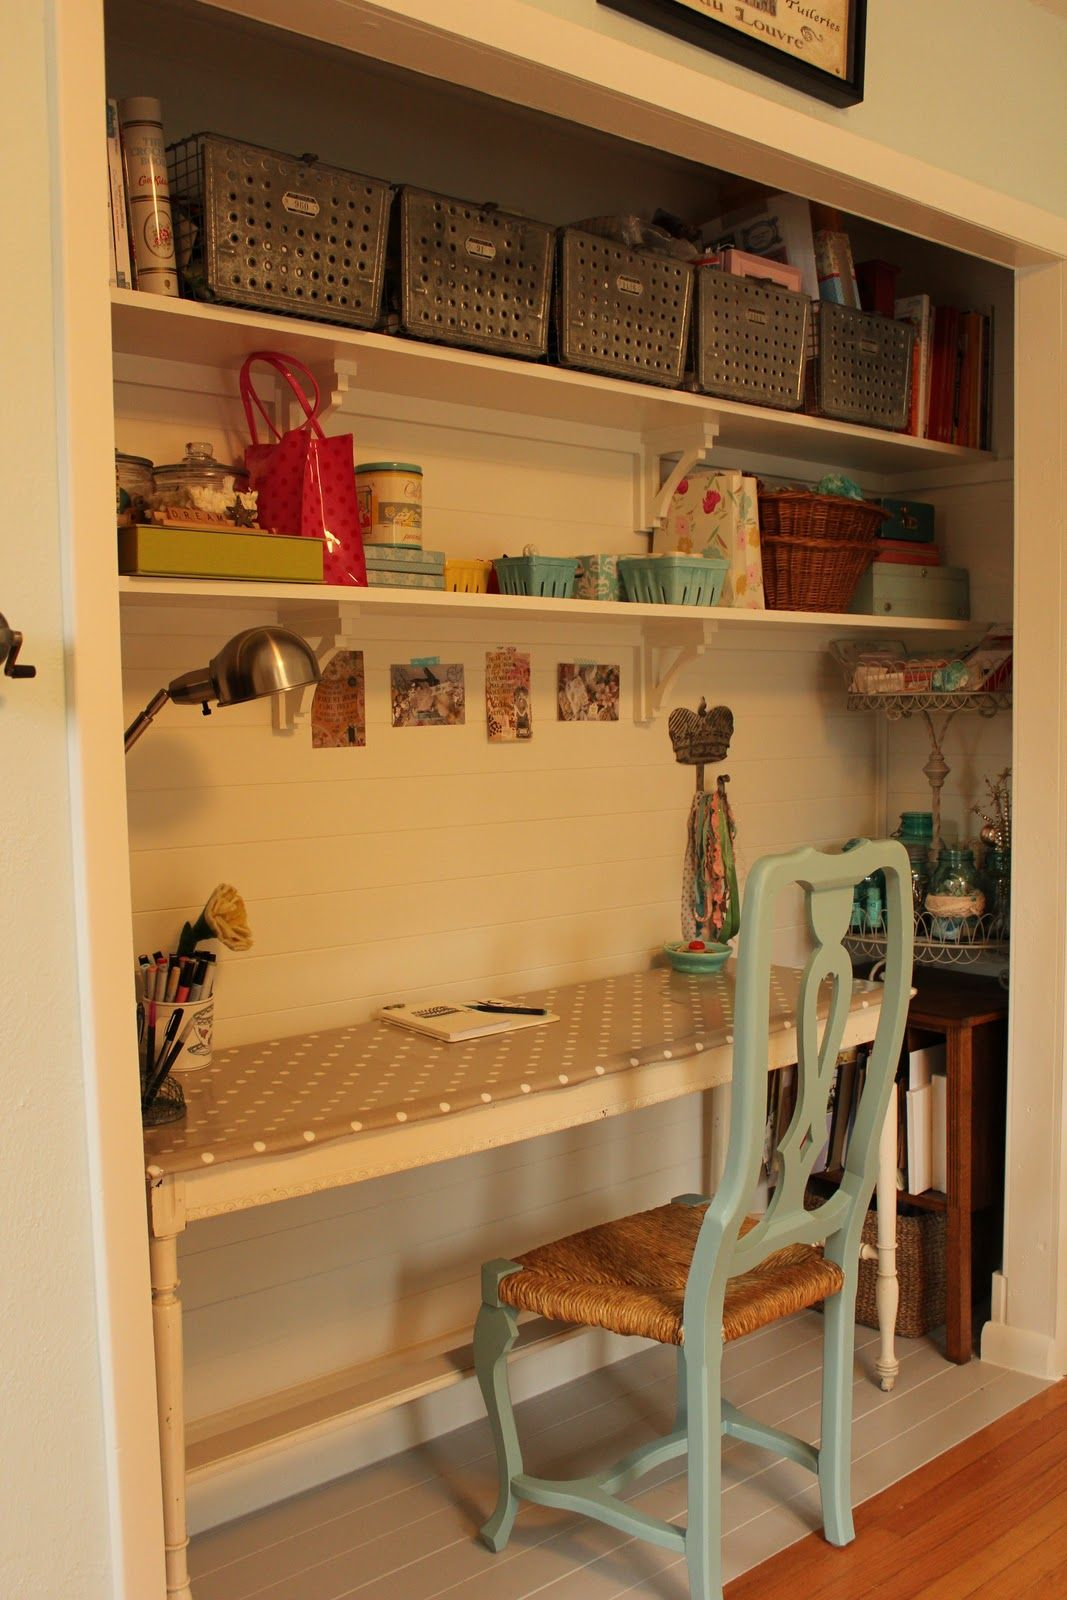 closet turned desk nook work space pinterest desks nooks my sewing closet in my office good storage organization ideas this is supposed to be for a closet office but frankly i d rather convert my office into a